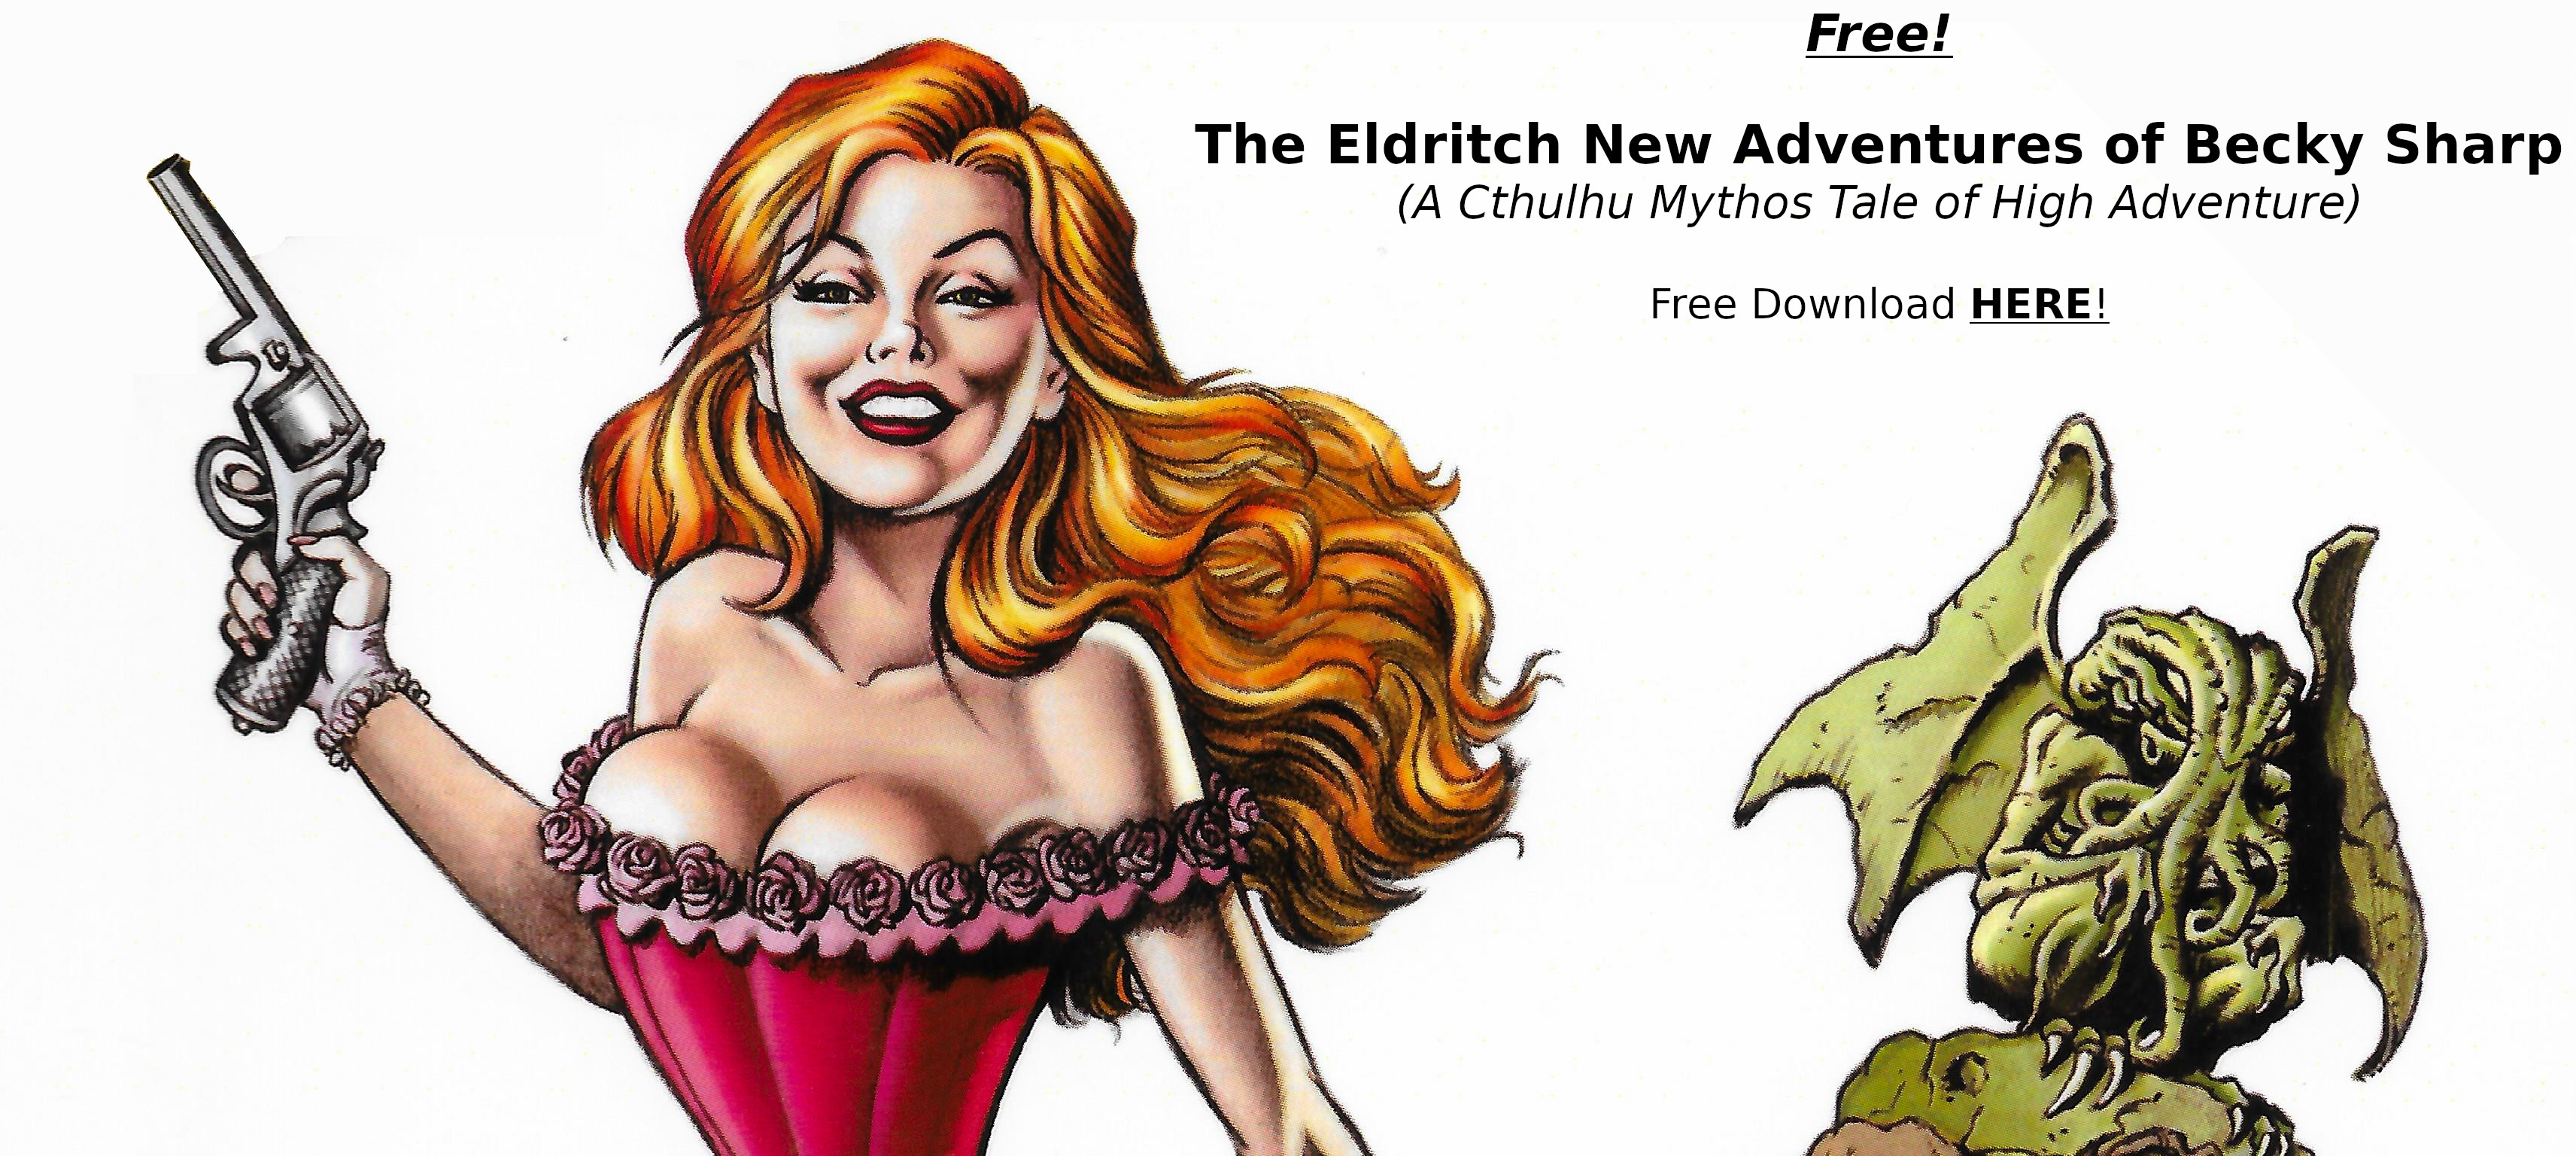 The Eldritch New Adventures of Becky Sharp by Micah Harris